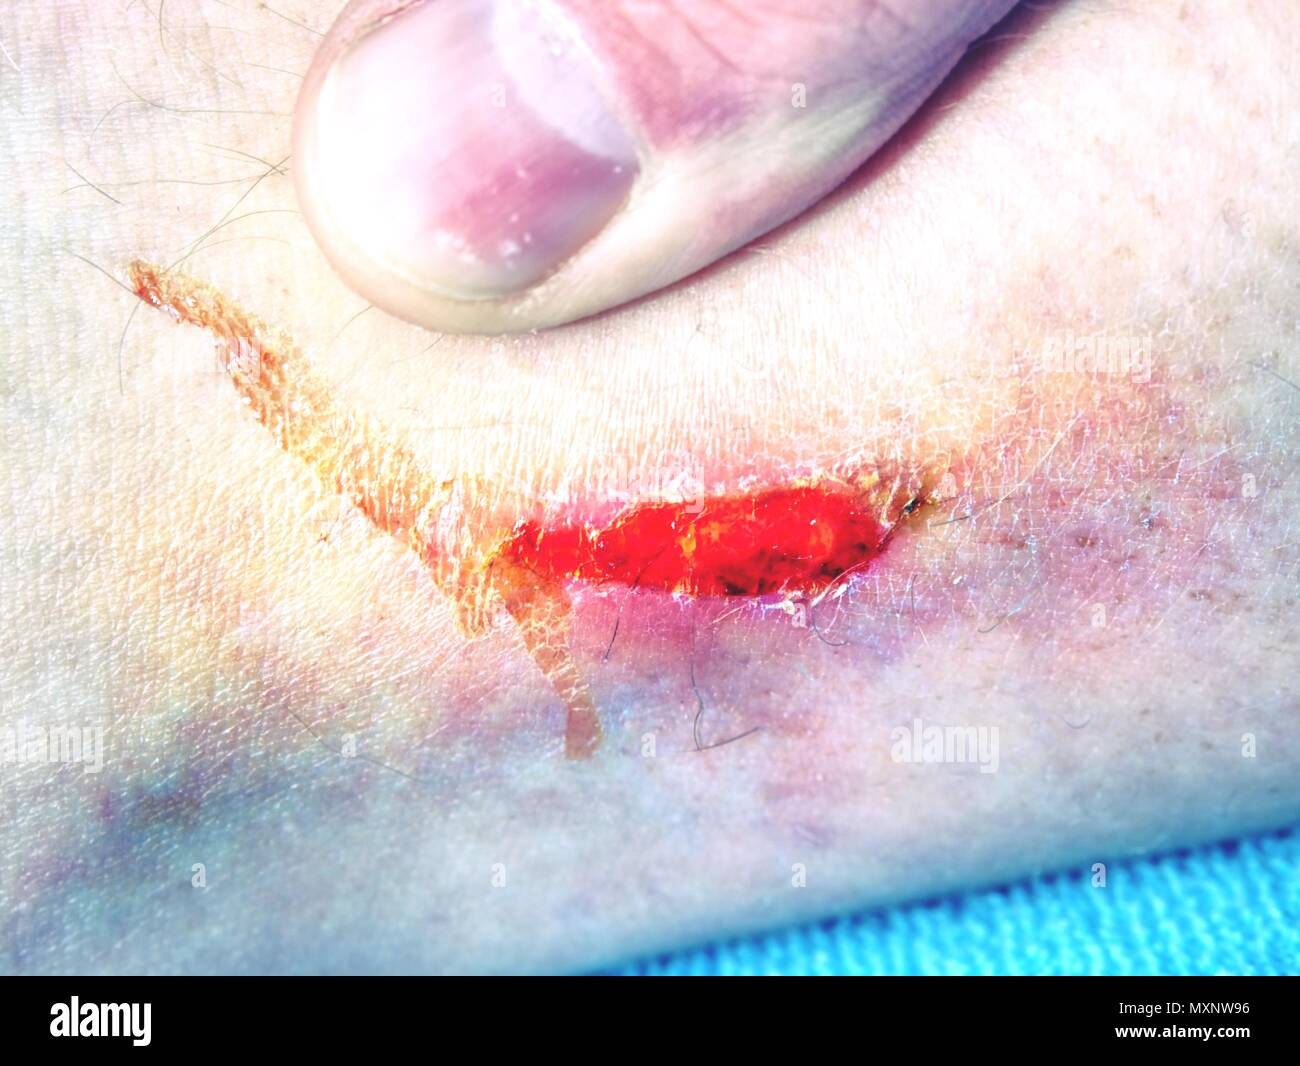 Fresh bloody place in skin. Nasty looking bruise on leg, detailed shot. The open wound before plaster covering in  ambulancy - Stock Image